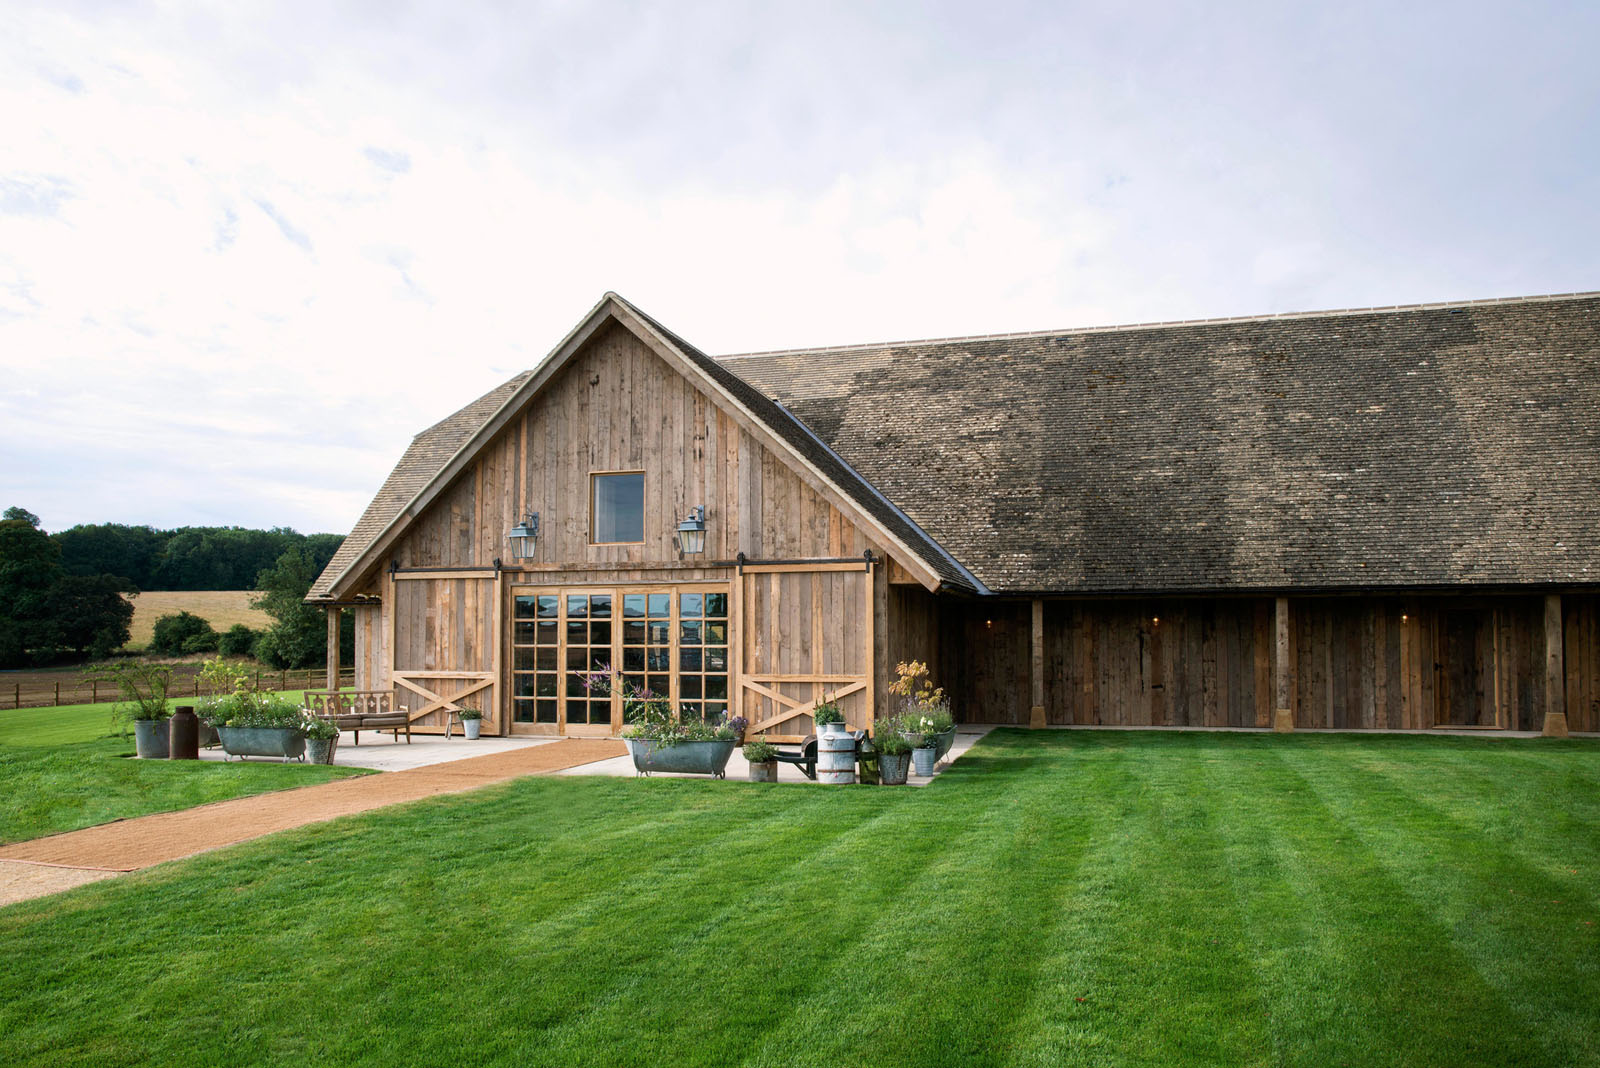 Soho Farmhouse Oxfordshire An Exclusive Retreat In The